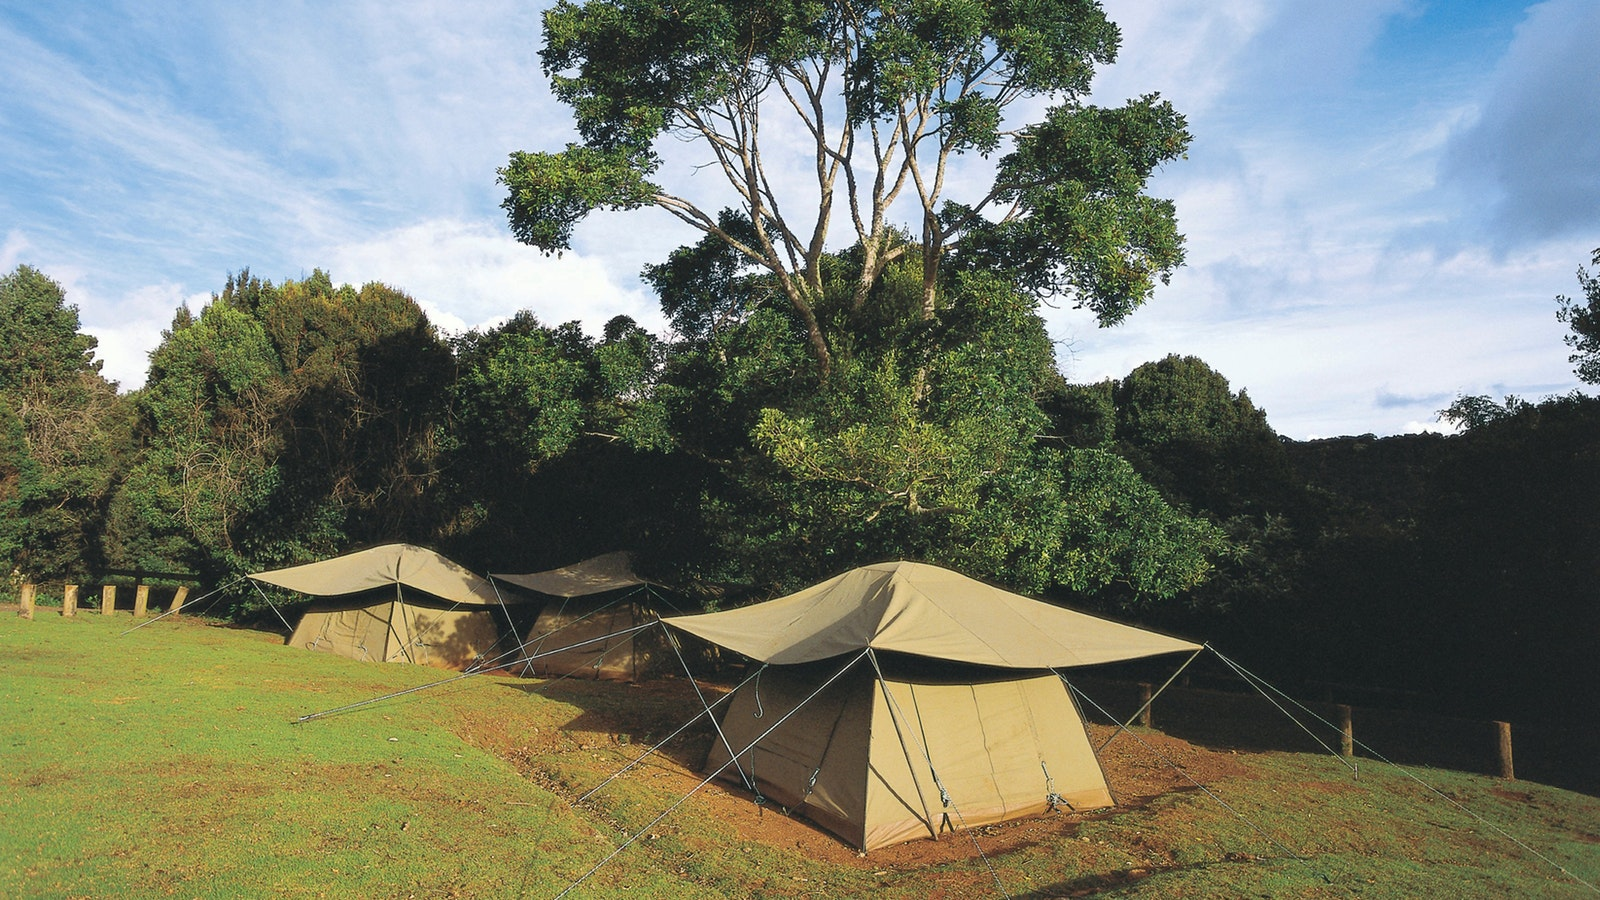 tenst in cleared camping area surrounded by rainforest.